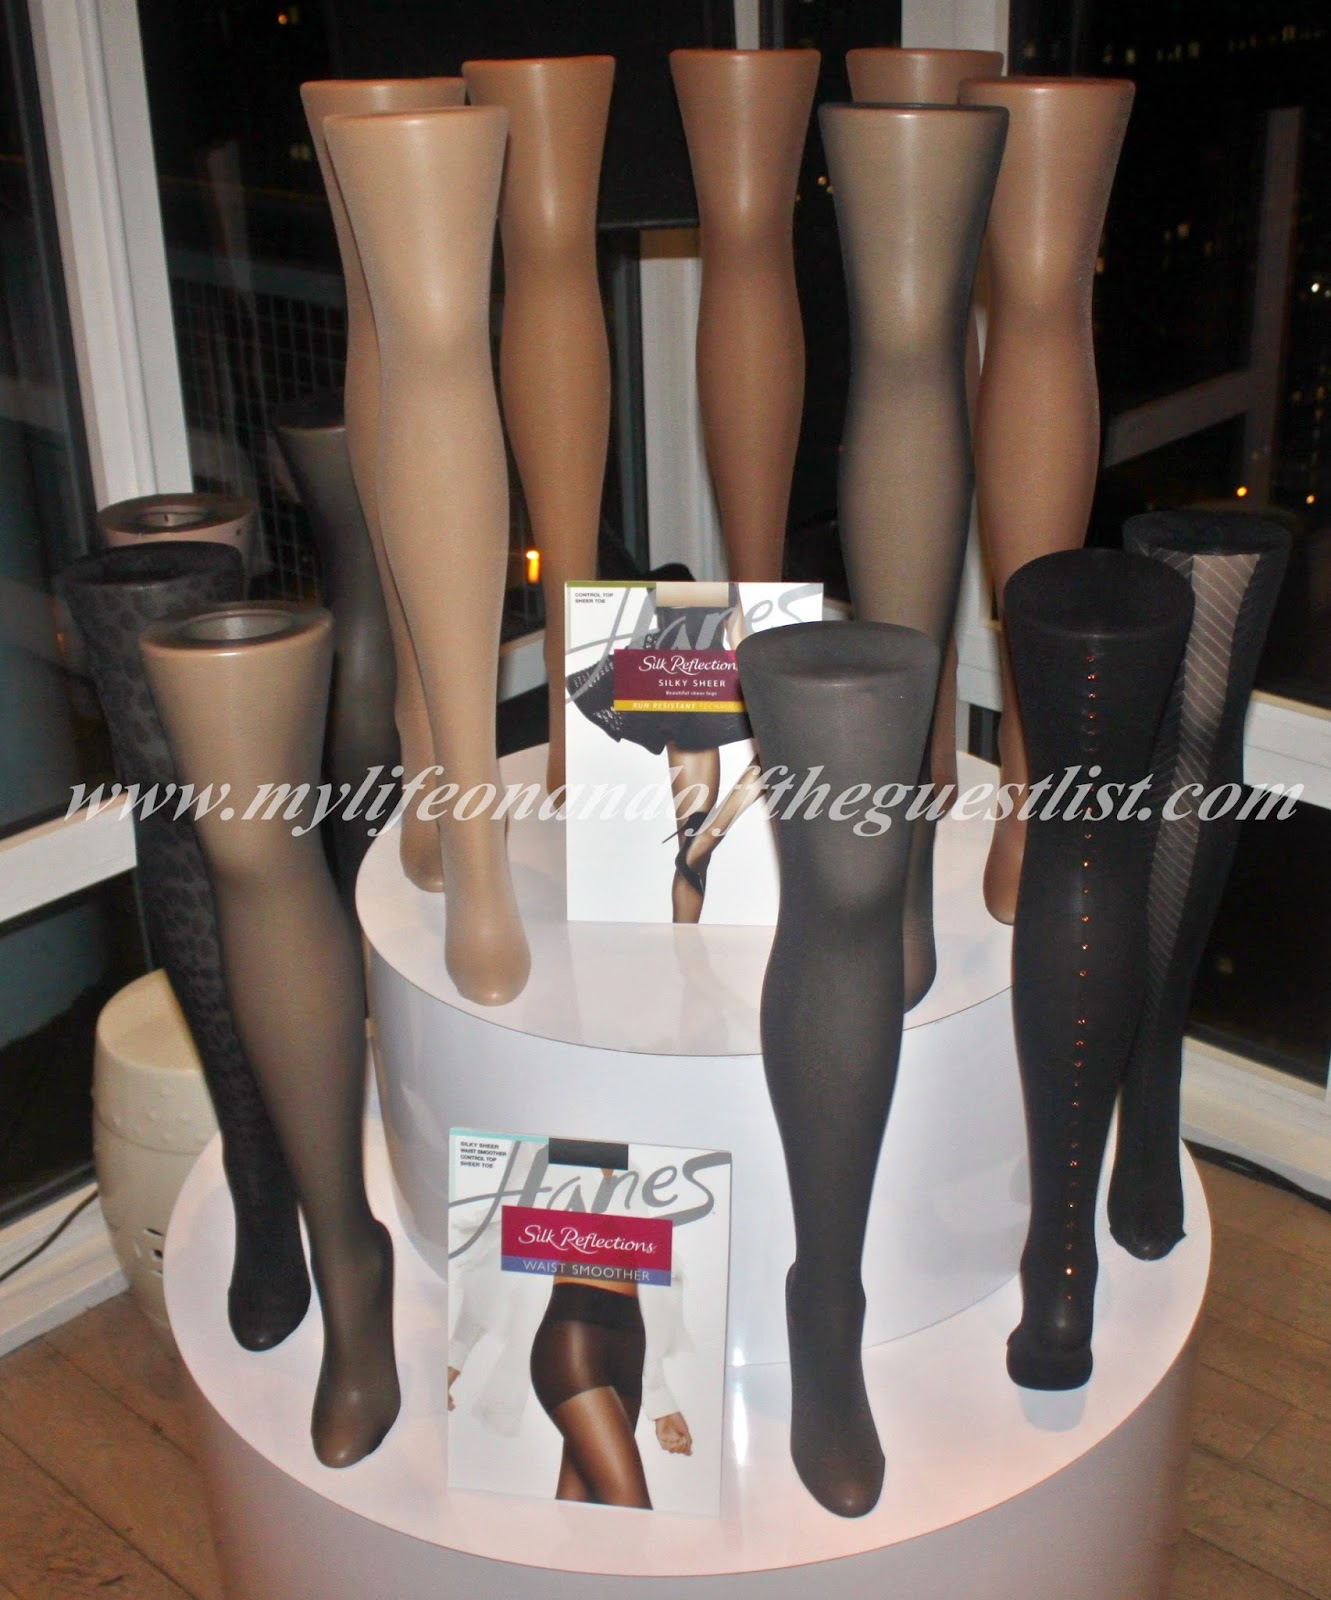 c6b016214f6d4 Hanes Hosiery Celebrates 75th Anniversary of Nylon Stockings & New Silk  Reflections Collections